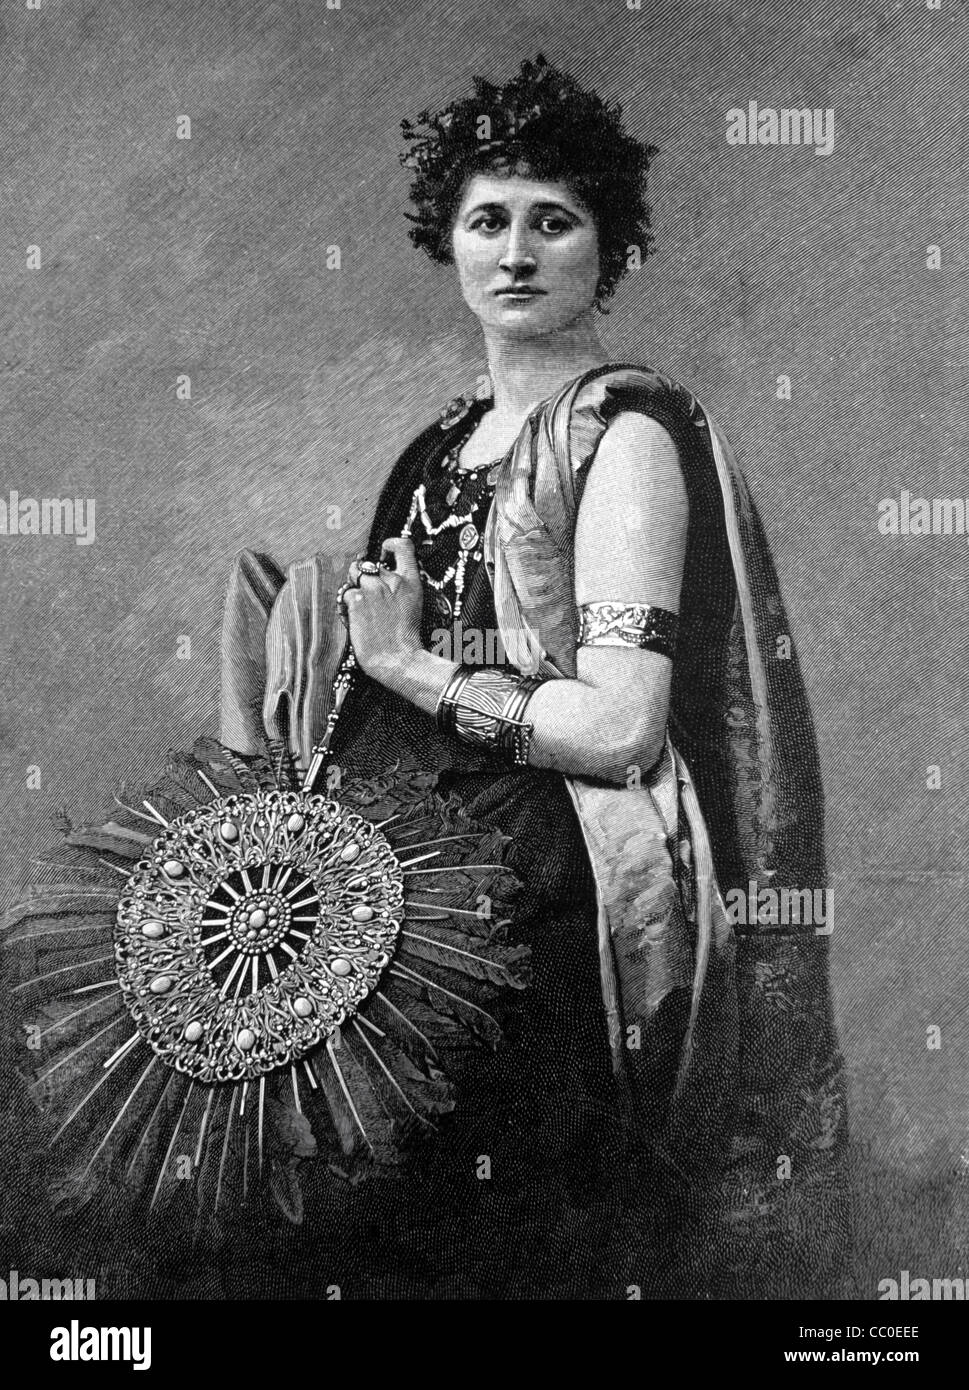 Hermione, daughter of Helen of Troy and Menelaus, King of Sparta, wearing Ancient Greek Costume, 1890s Wood Engraving - Stock Image